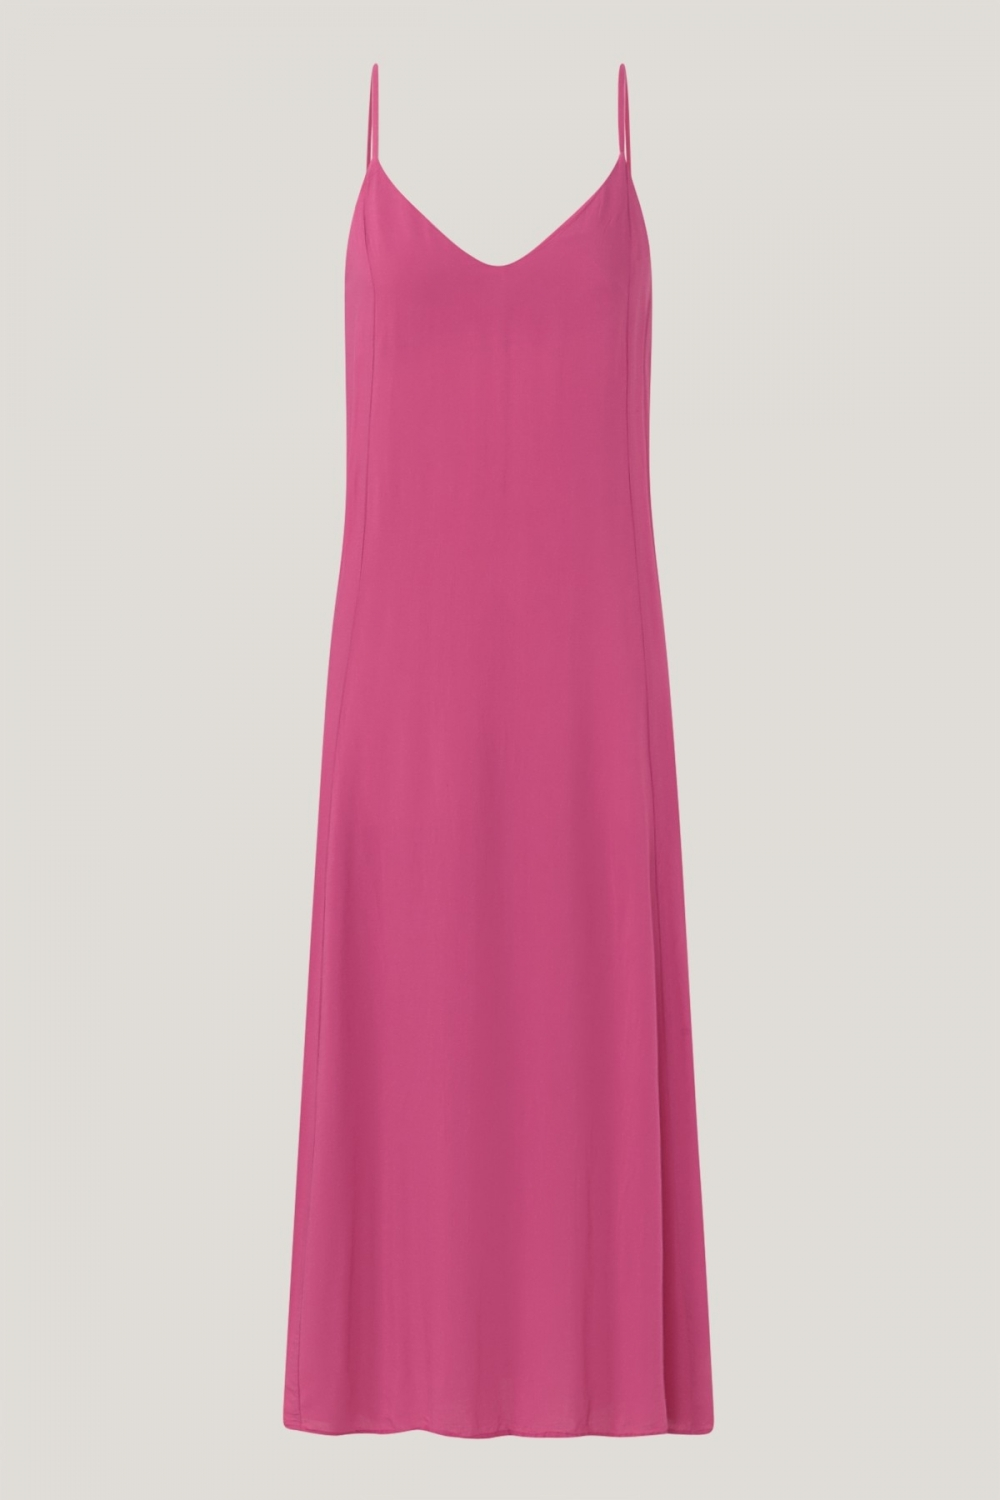 LUCY LONG DRESS IN SUPER PINK